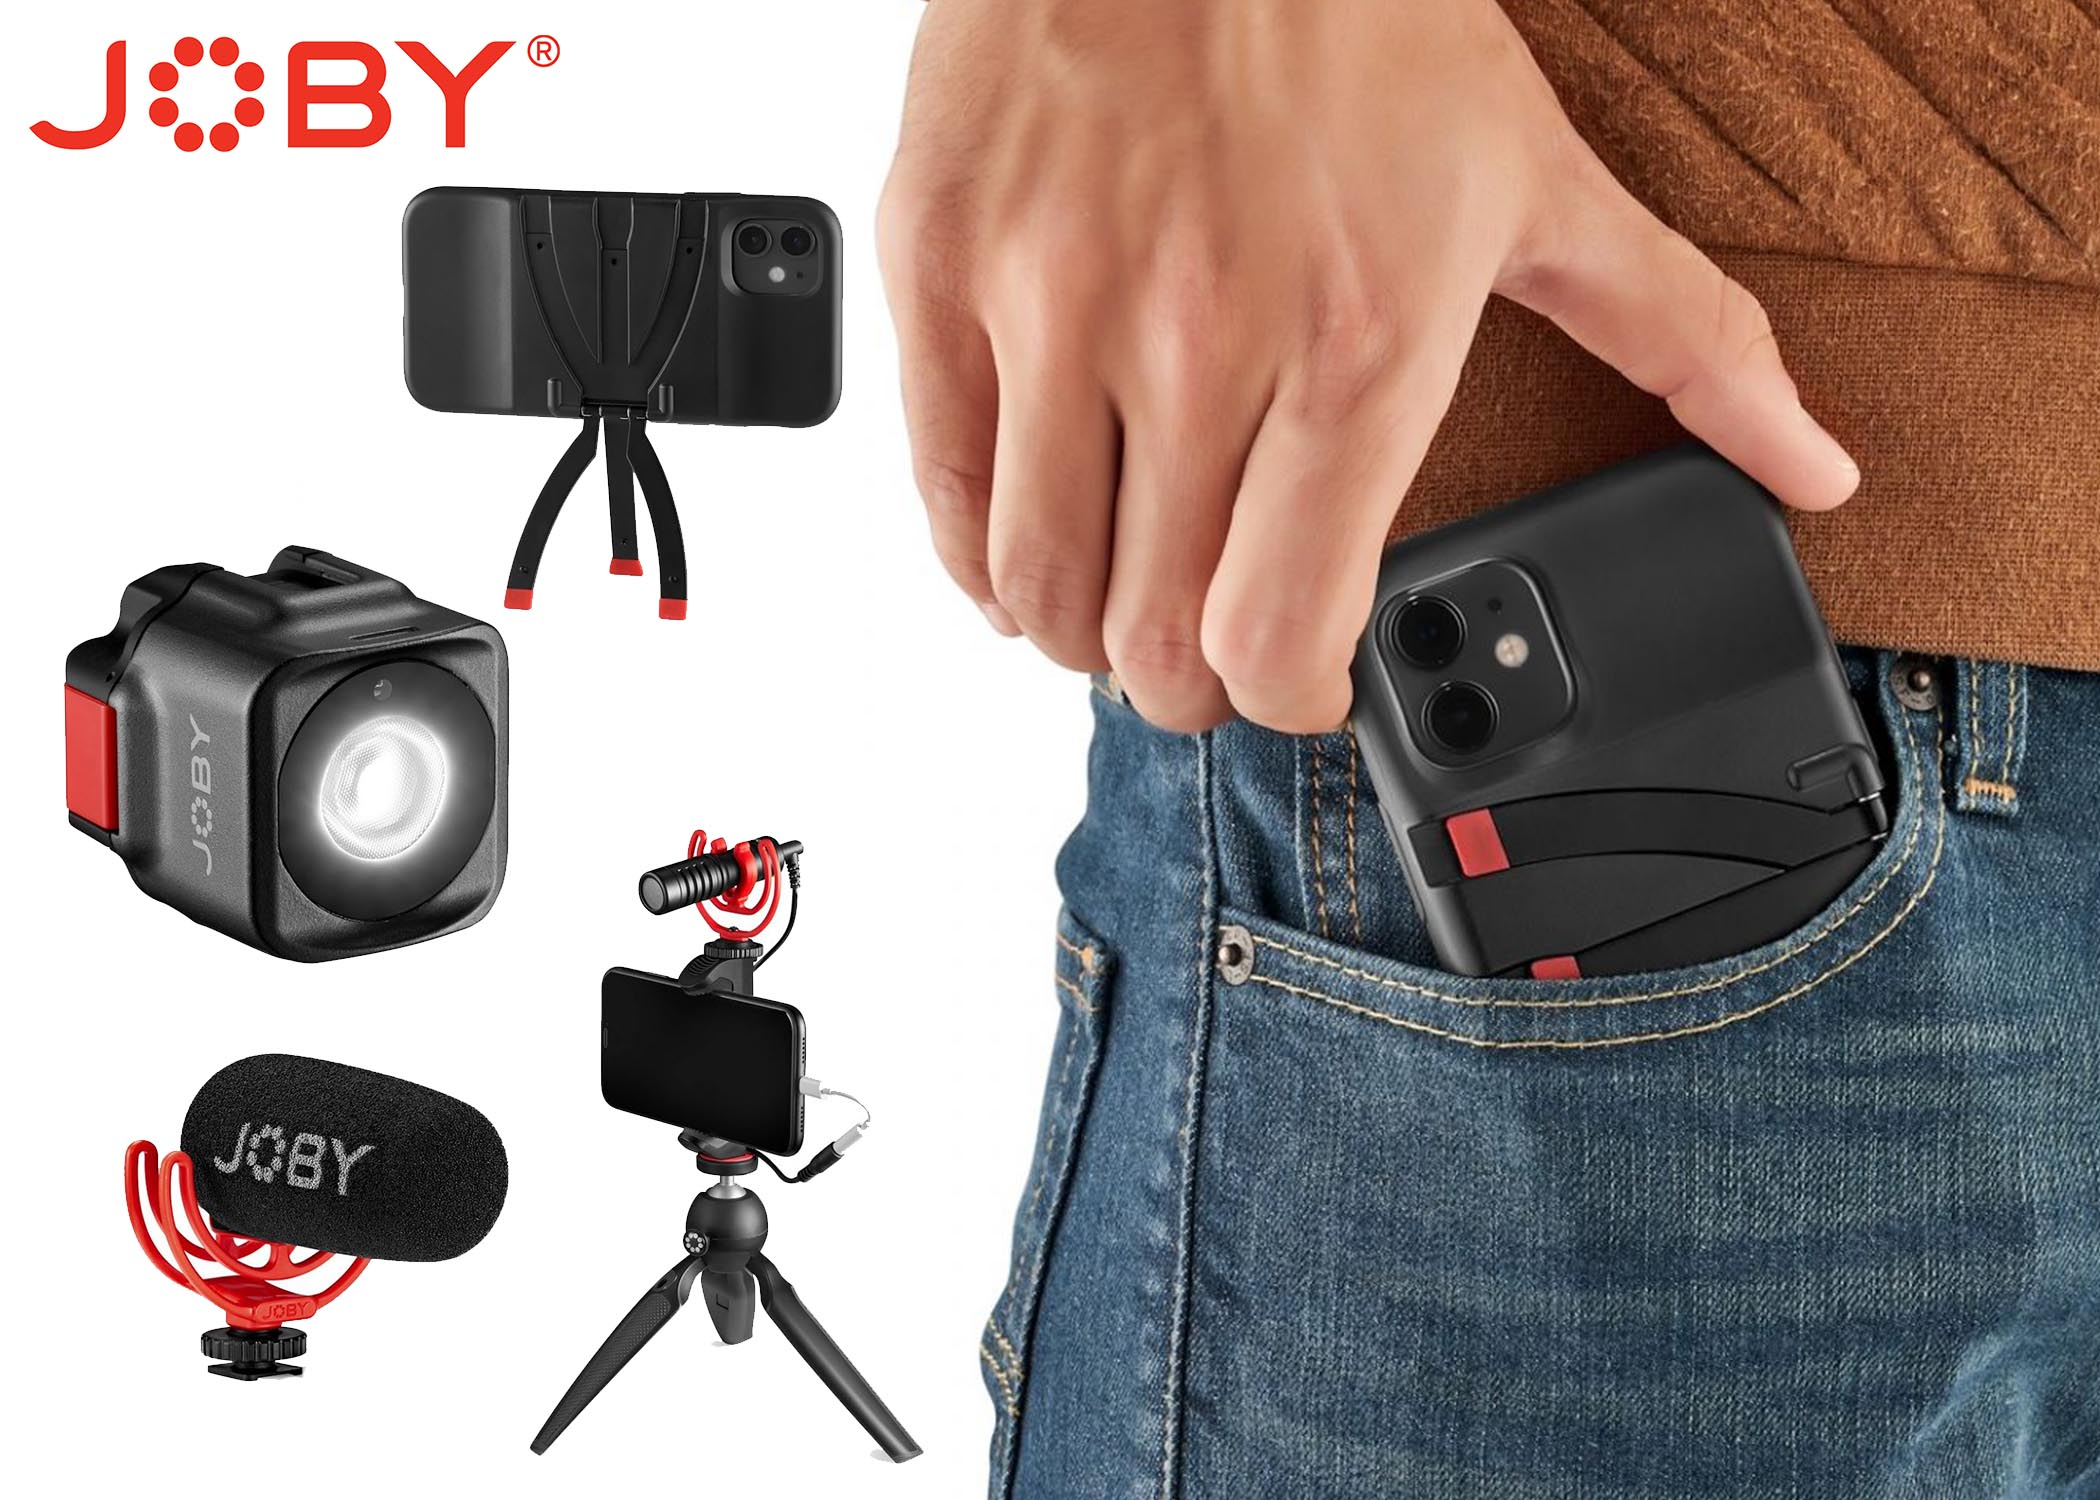 JOBY launches new lineup of accessories | Cameraland Sandton